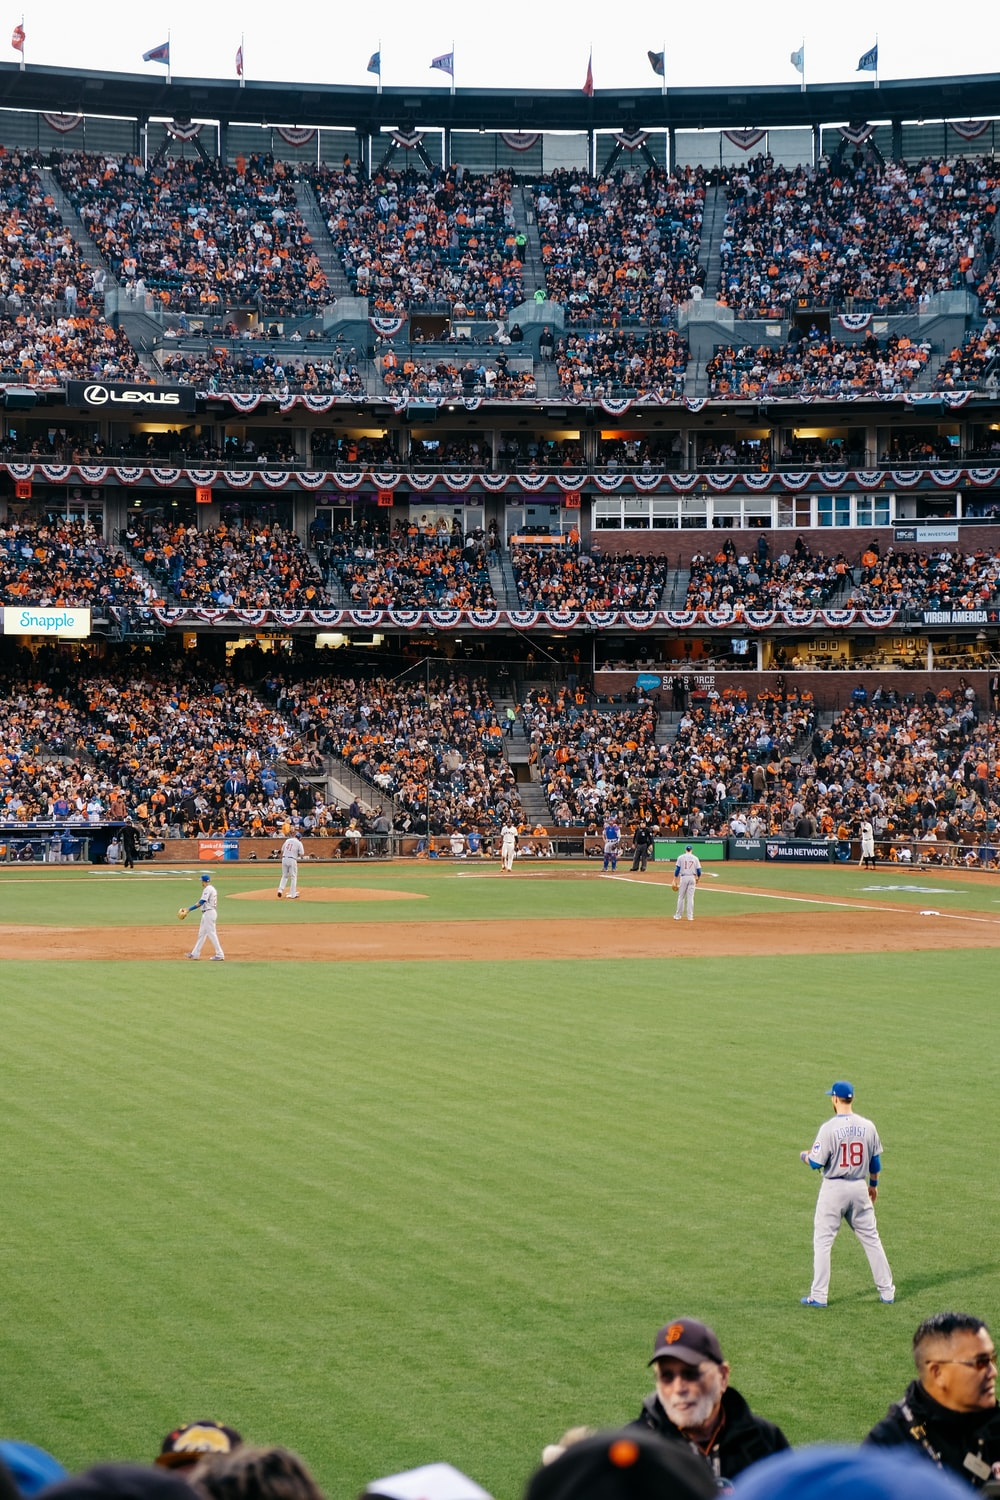 photo of baseball players in stadium during daytime